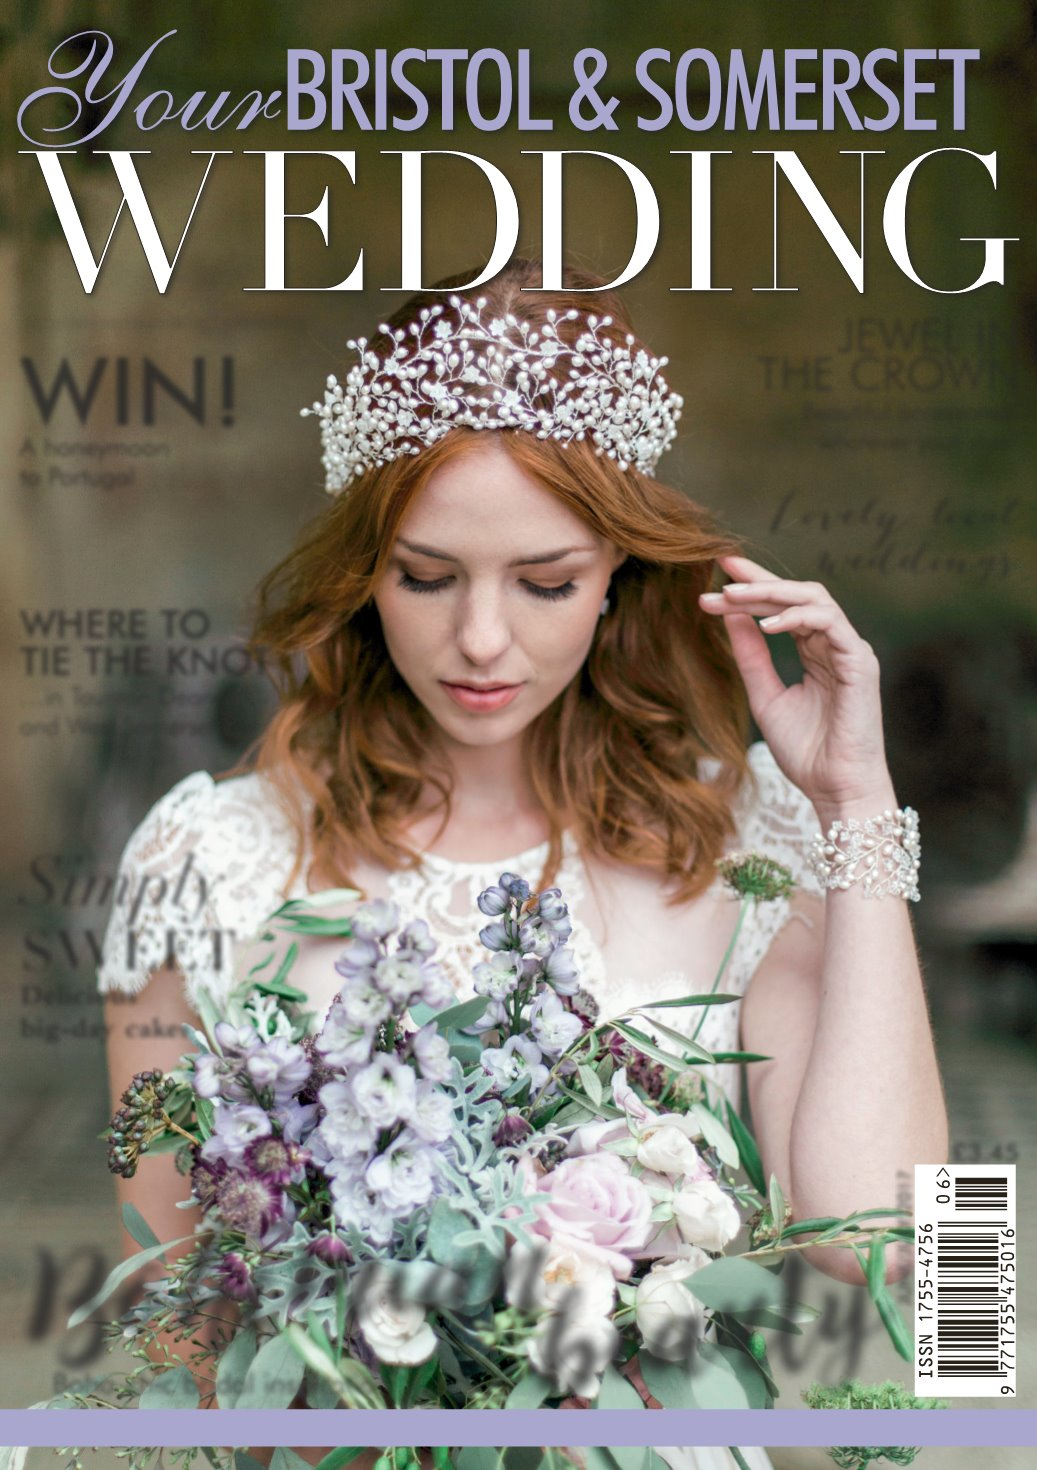 thairapy front page of B & S Wedding for Hermione Harbutt